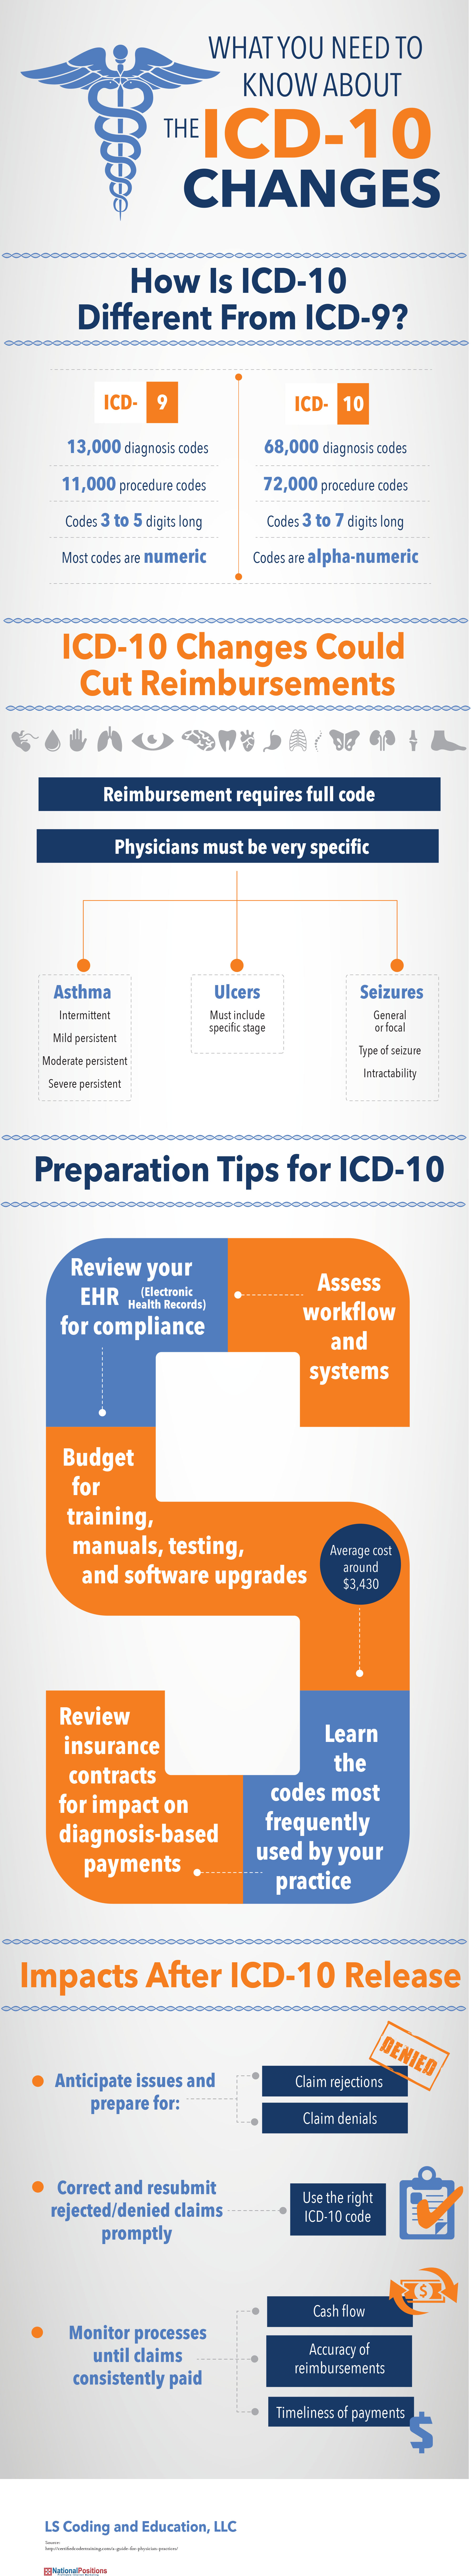 Resources and articles ls coding and education llc icd 10 vs icd 9 1betcityfo Gallery